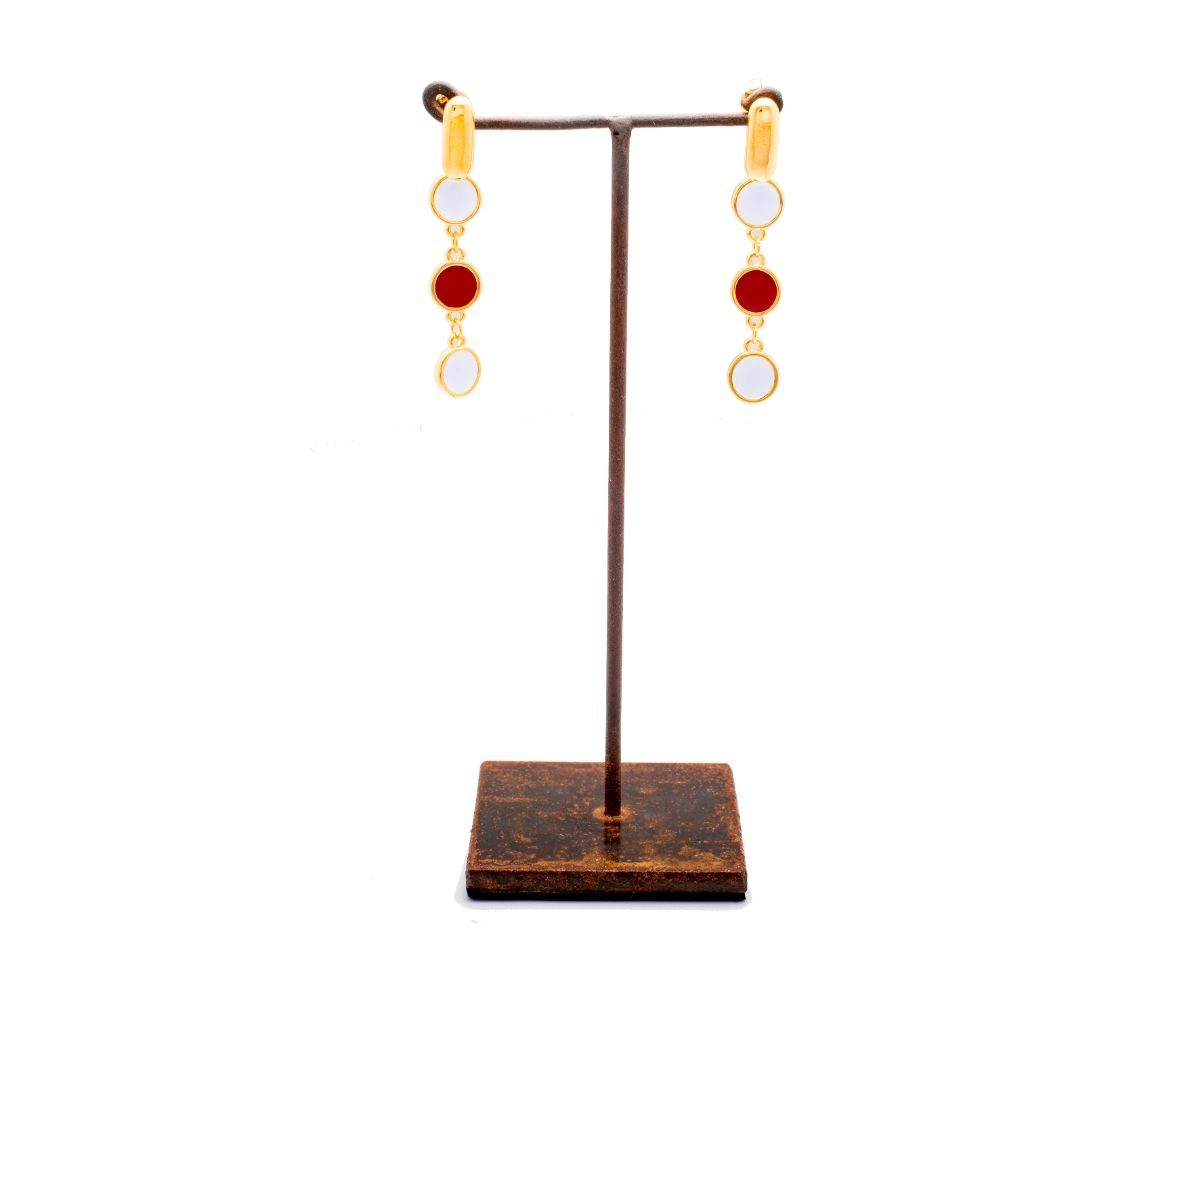 A Coruña long earring finished in gold with three chained multicolored lacquered pieces